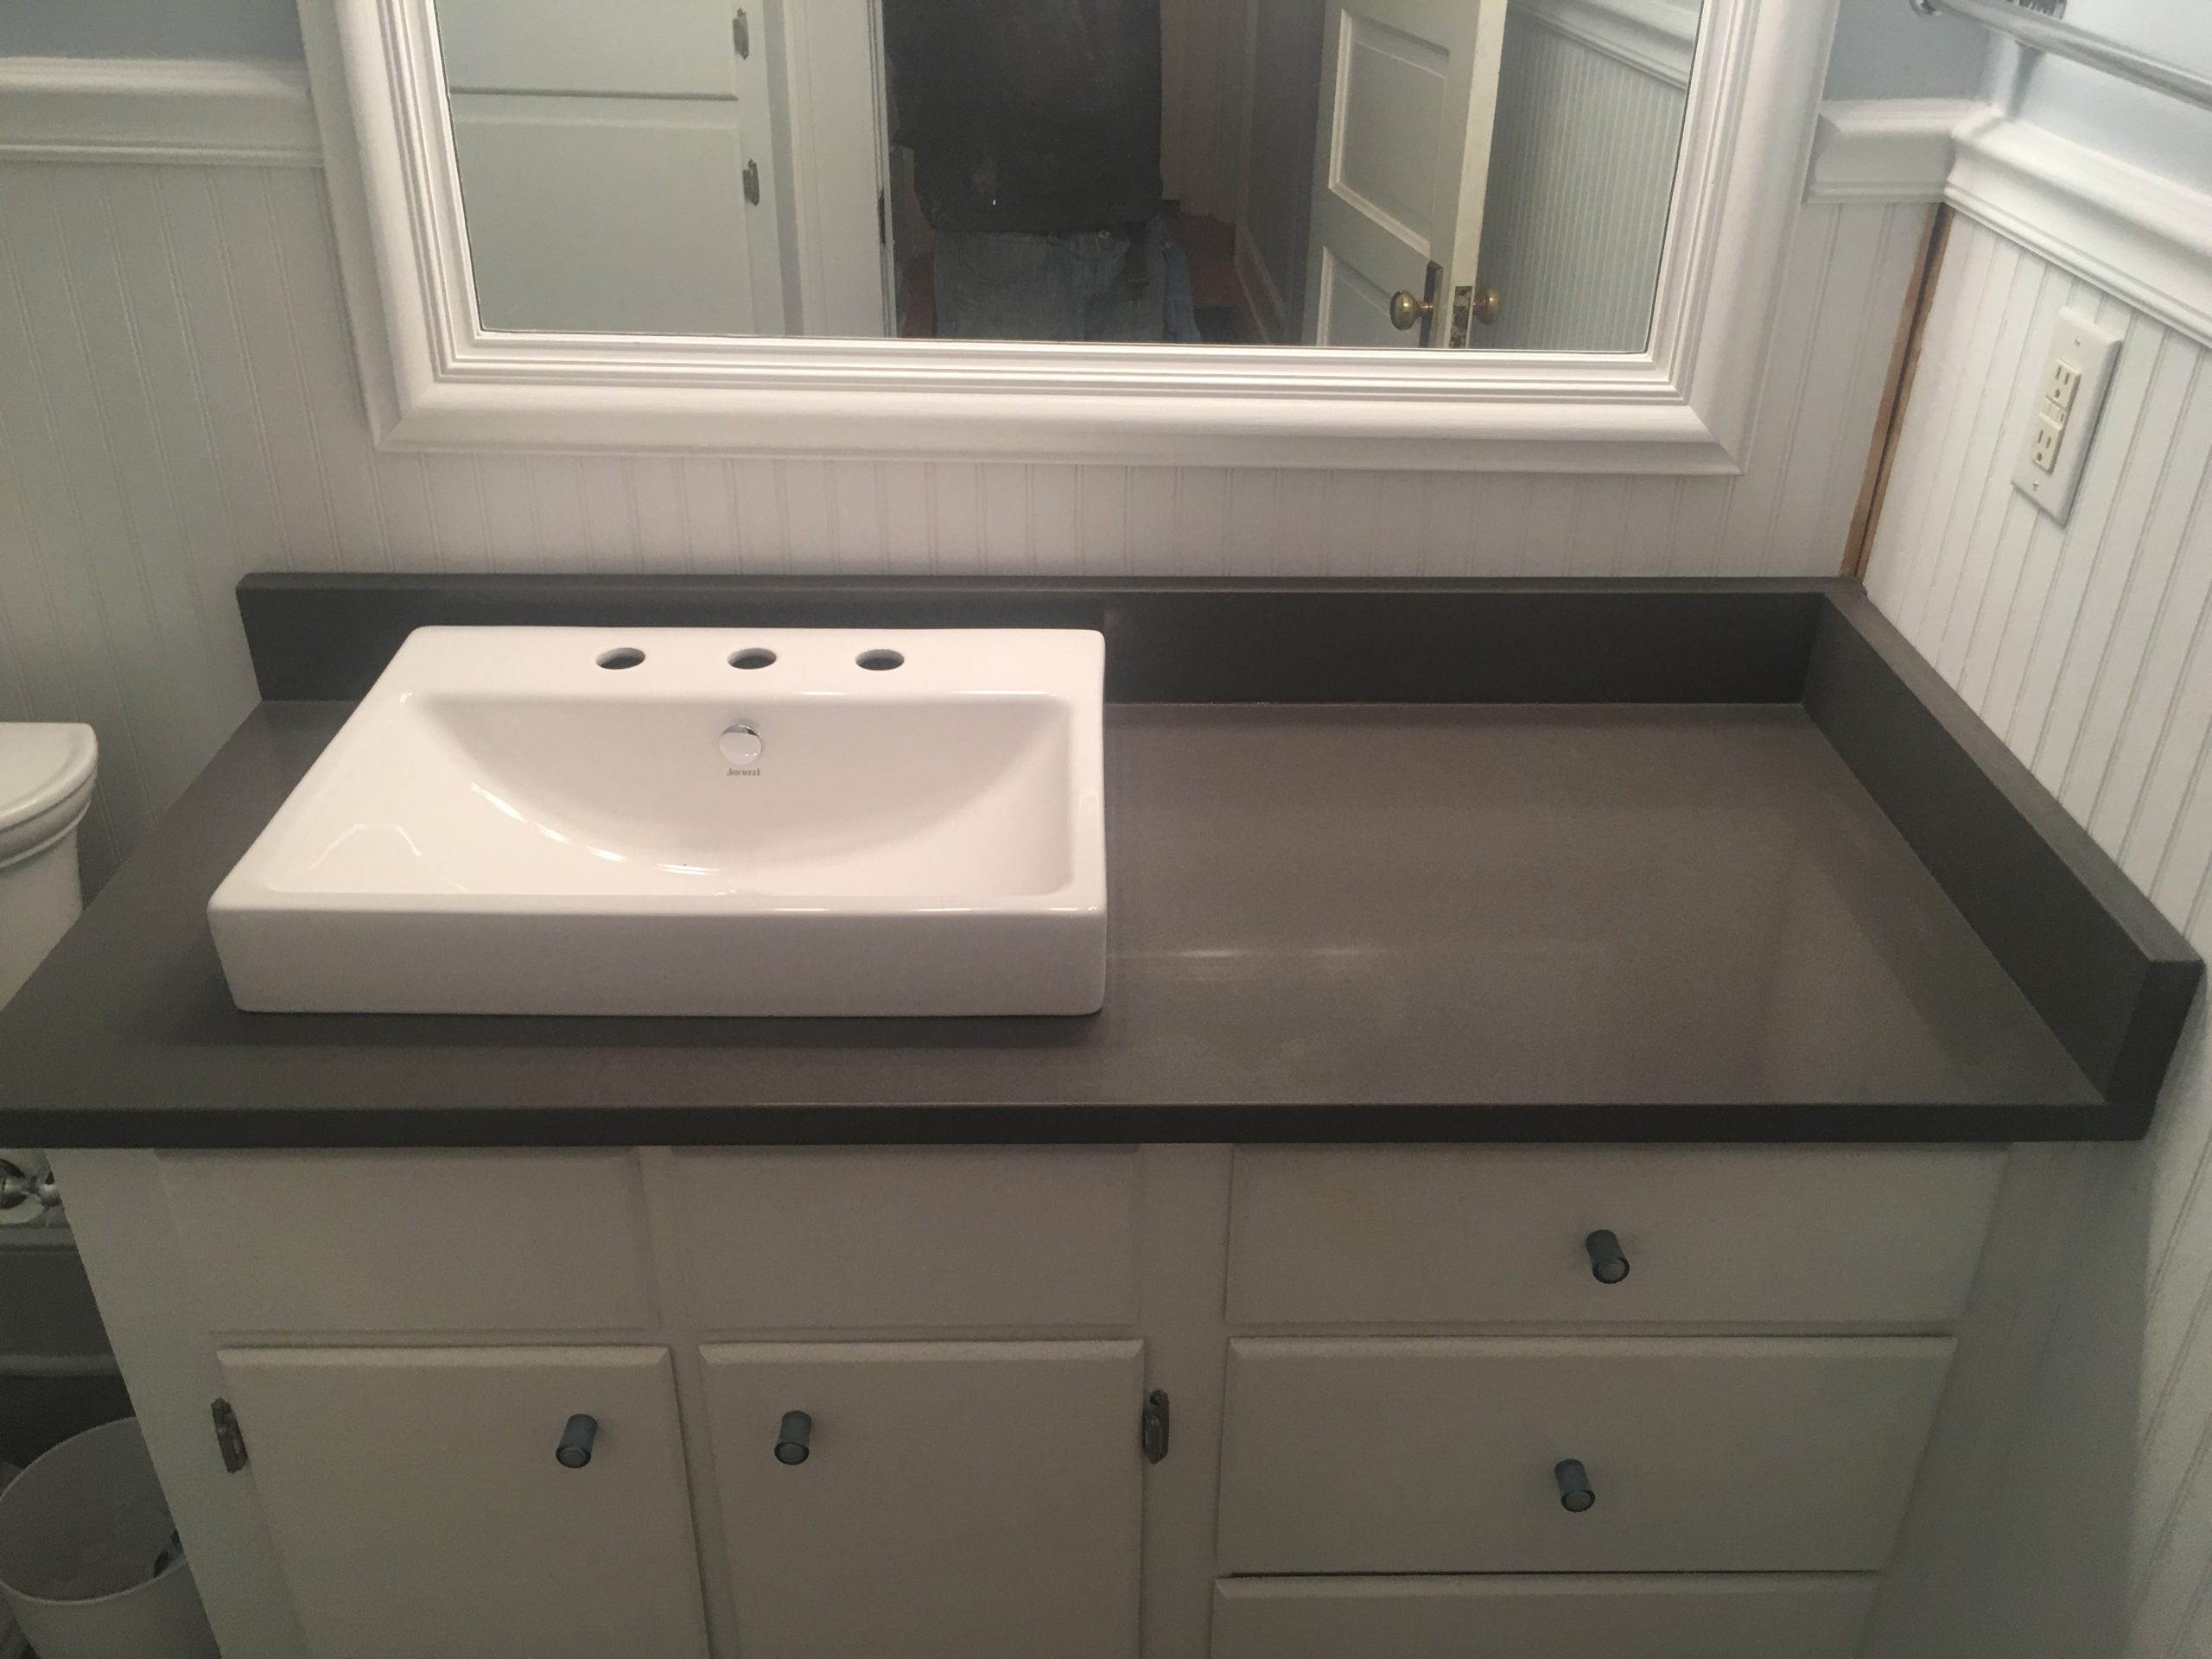 Heirloom Grey Quartz bathroom vanity install